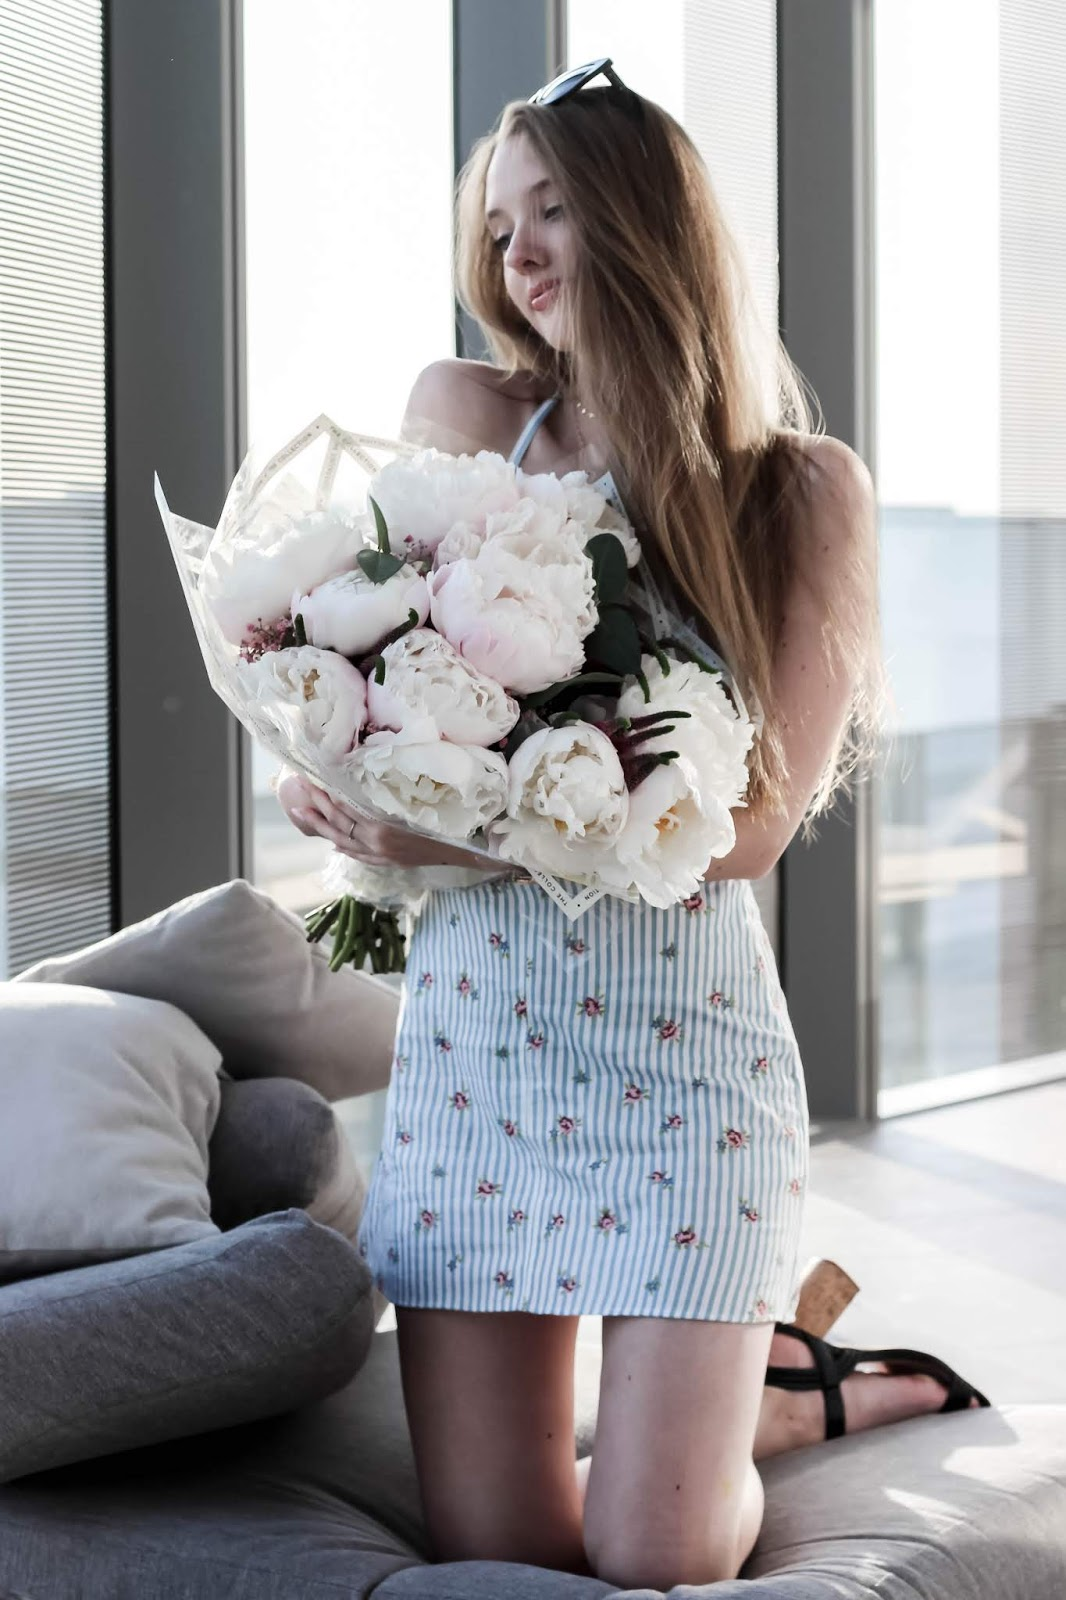 Fashion Blogger Holding Bouquet of Pink Peonies